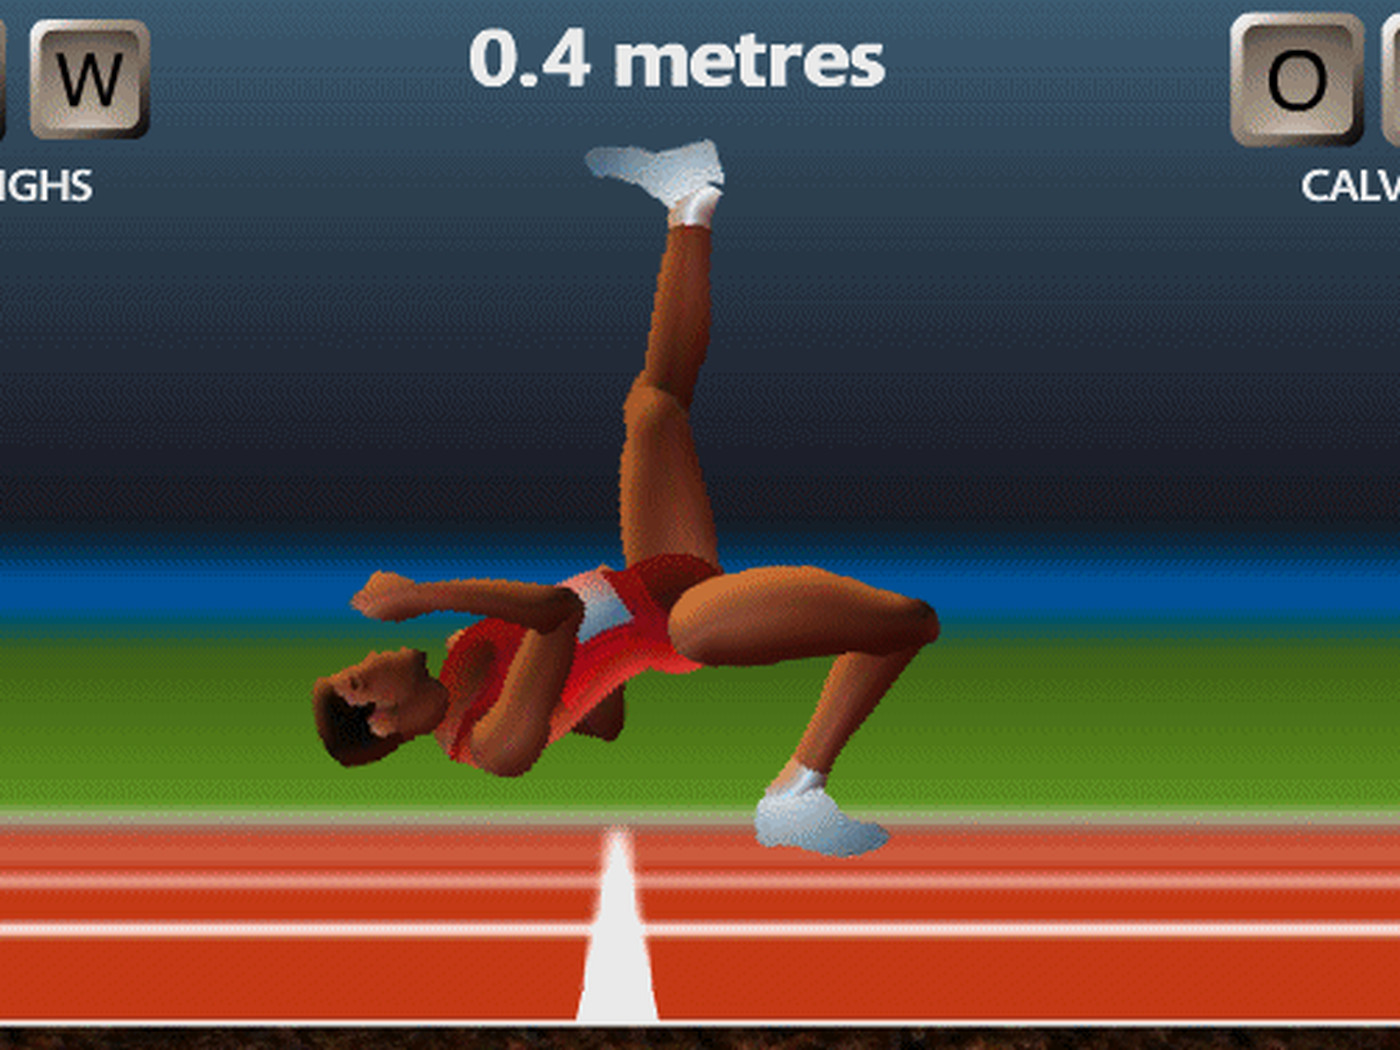 Persistence is futile qwop the funniest sports game of all time persistence is futile qwop the funniest sports game of all time sbnation ccuart Image collections